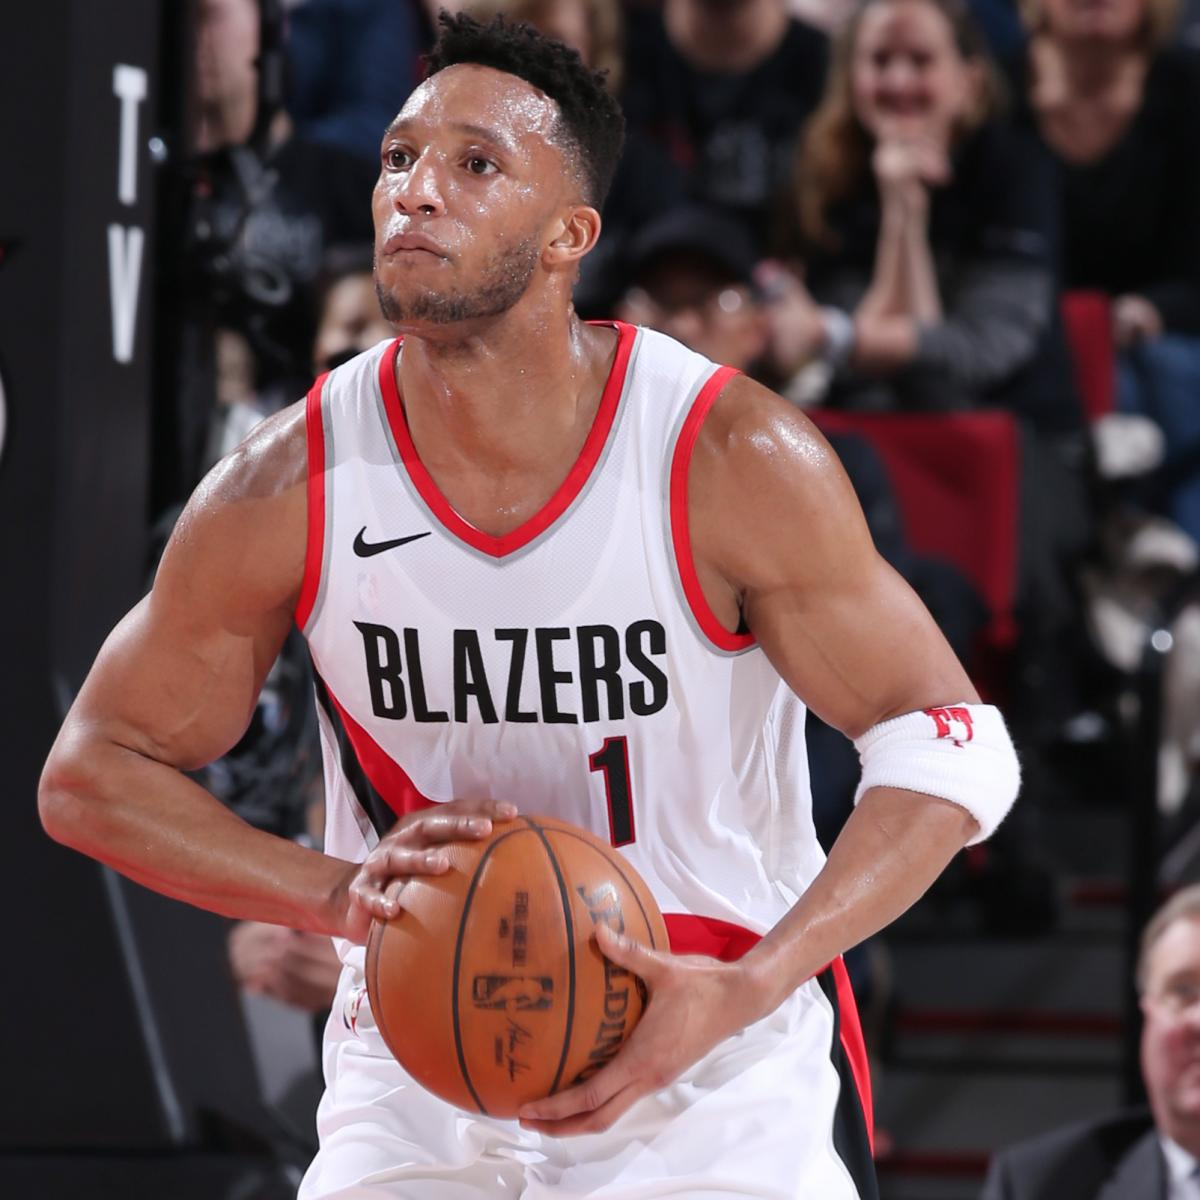 Blazers Game 3: Evan Turner Out For Game 3 Of Blazers Vs. Pelicans Due To